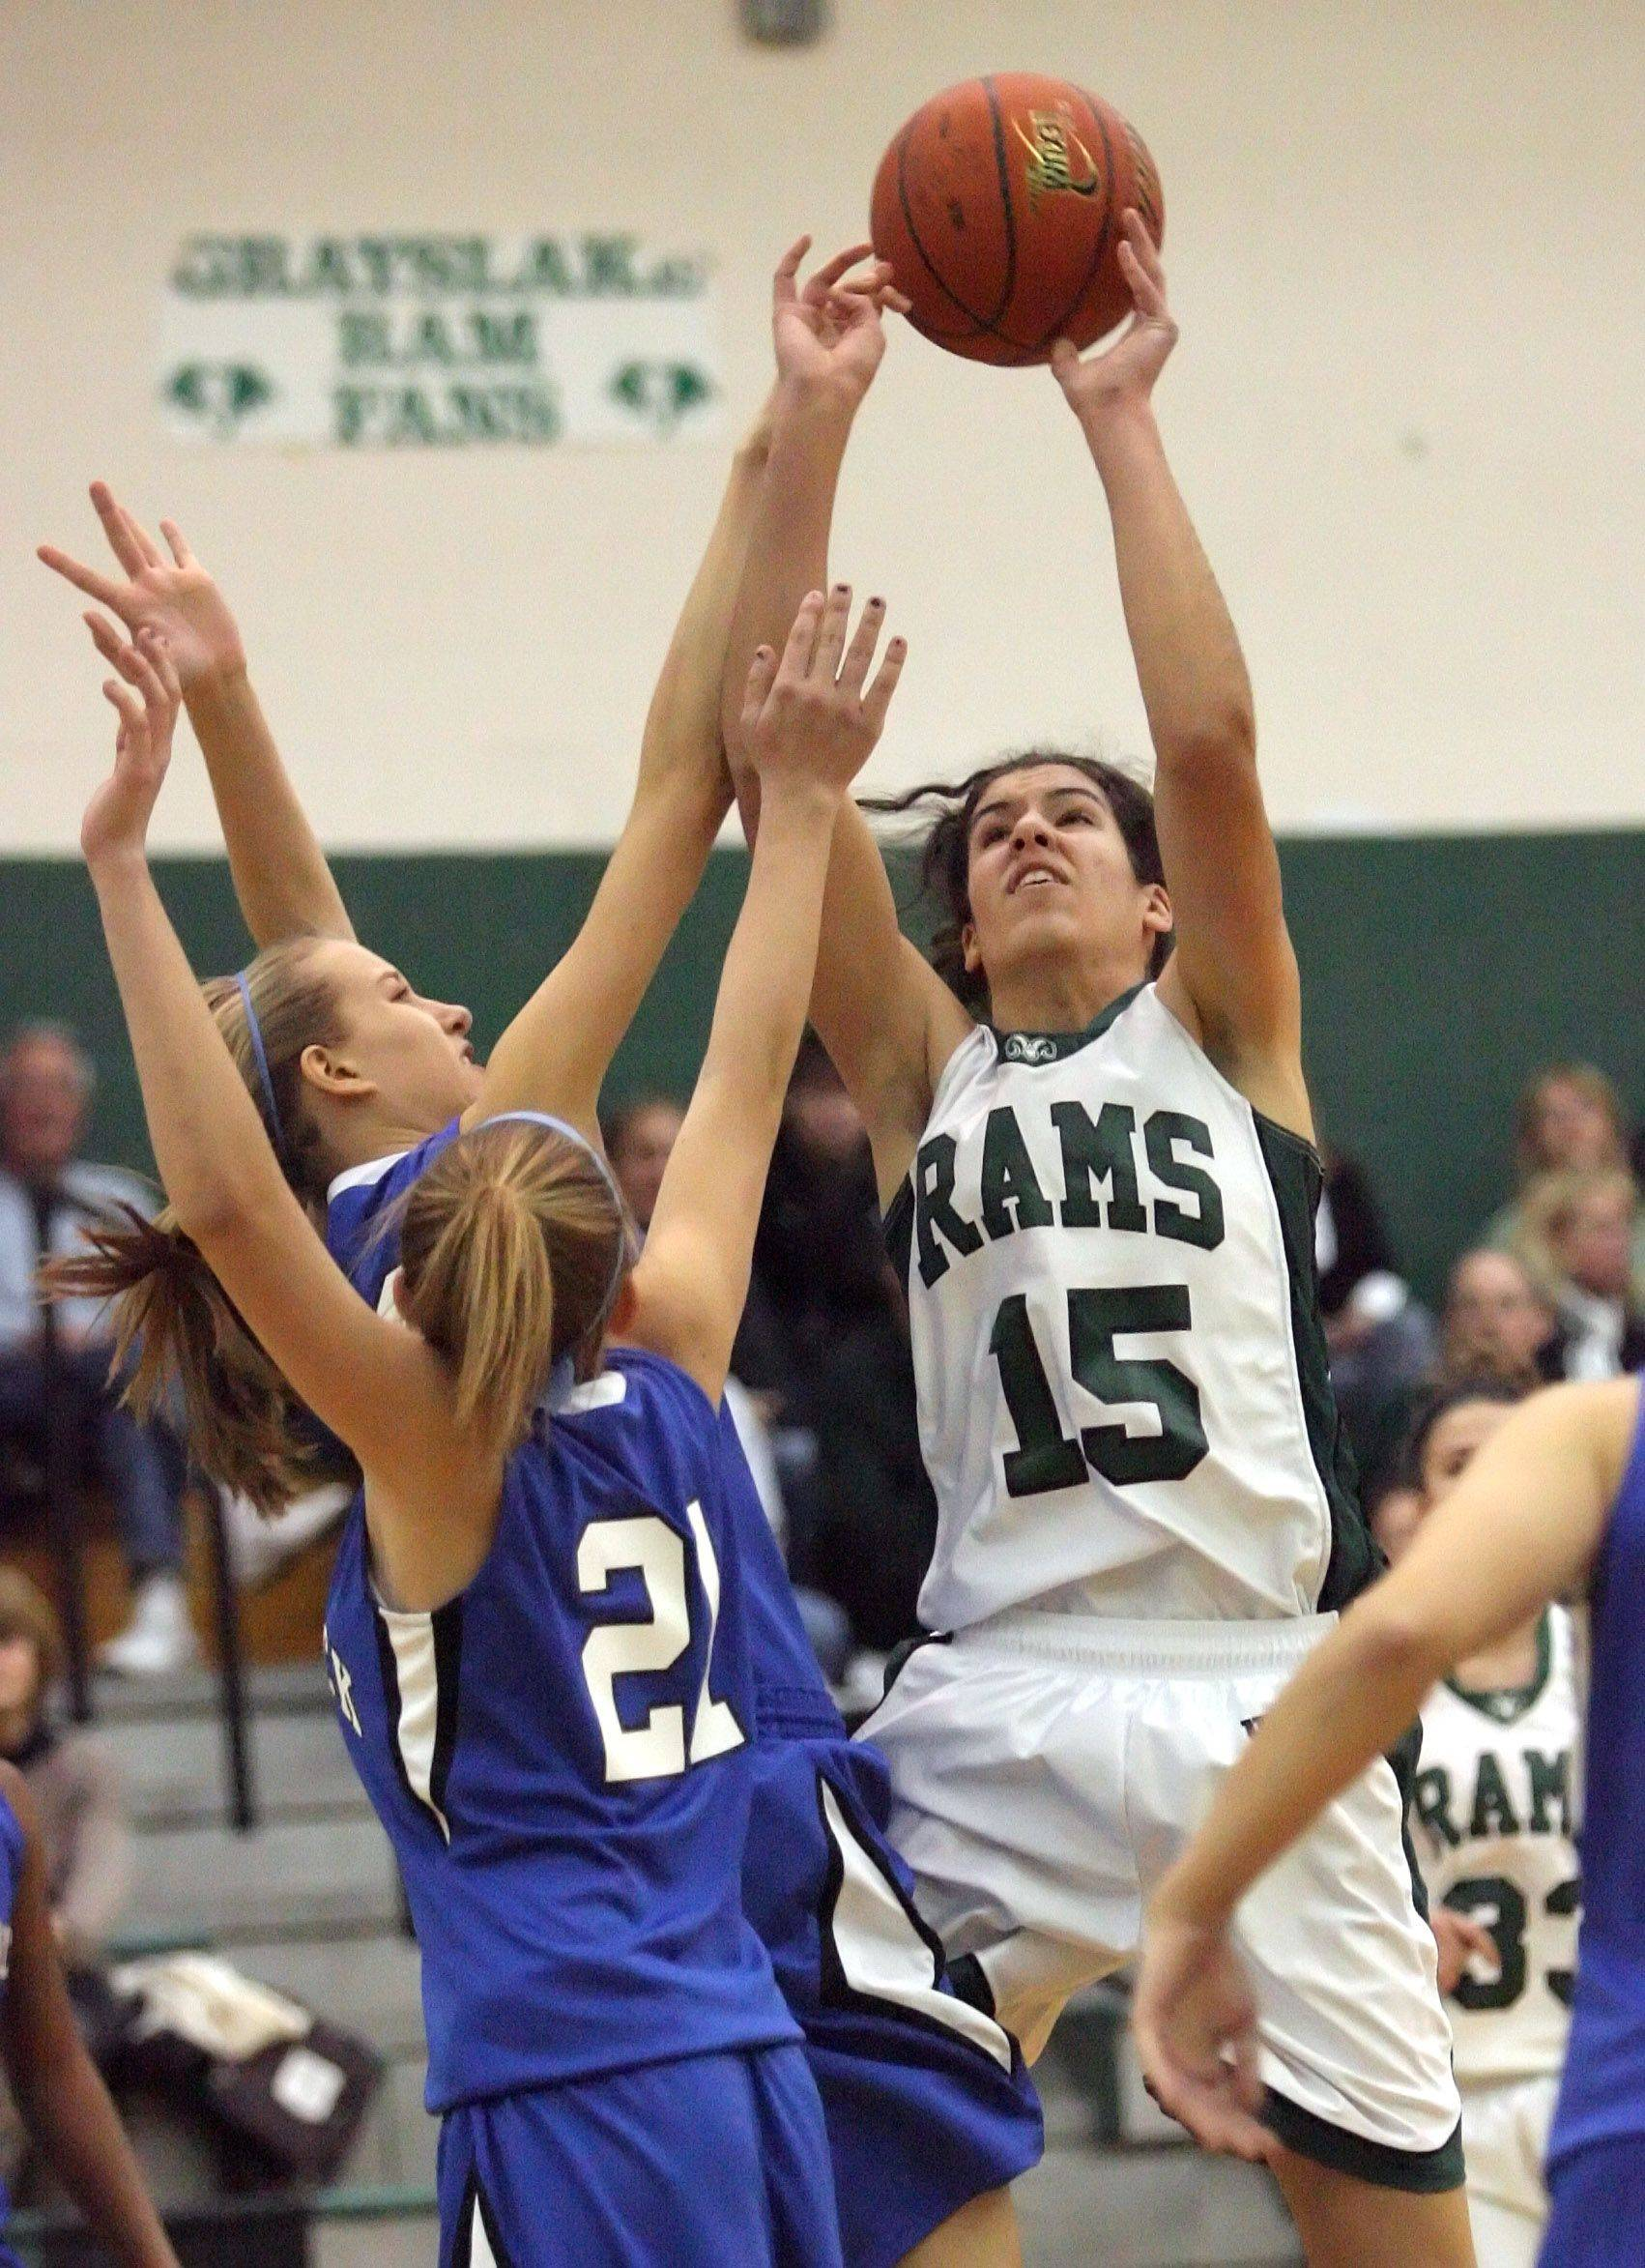 Grayslake Central's Rebekah Llorens shoots over Woodstock's Cody Brand, left, and Sami Ludwig .